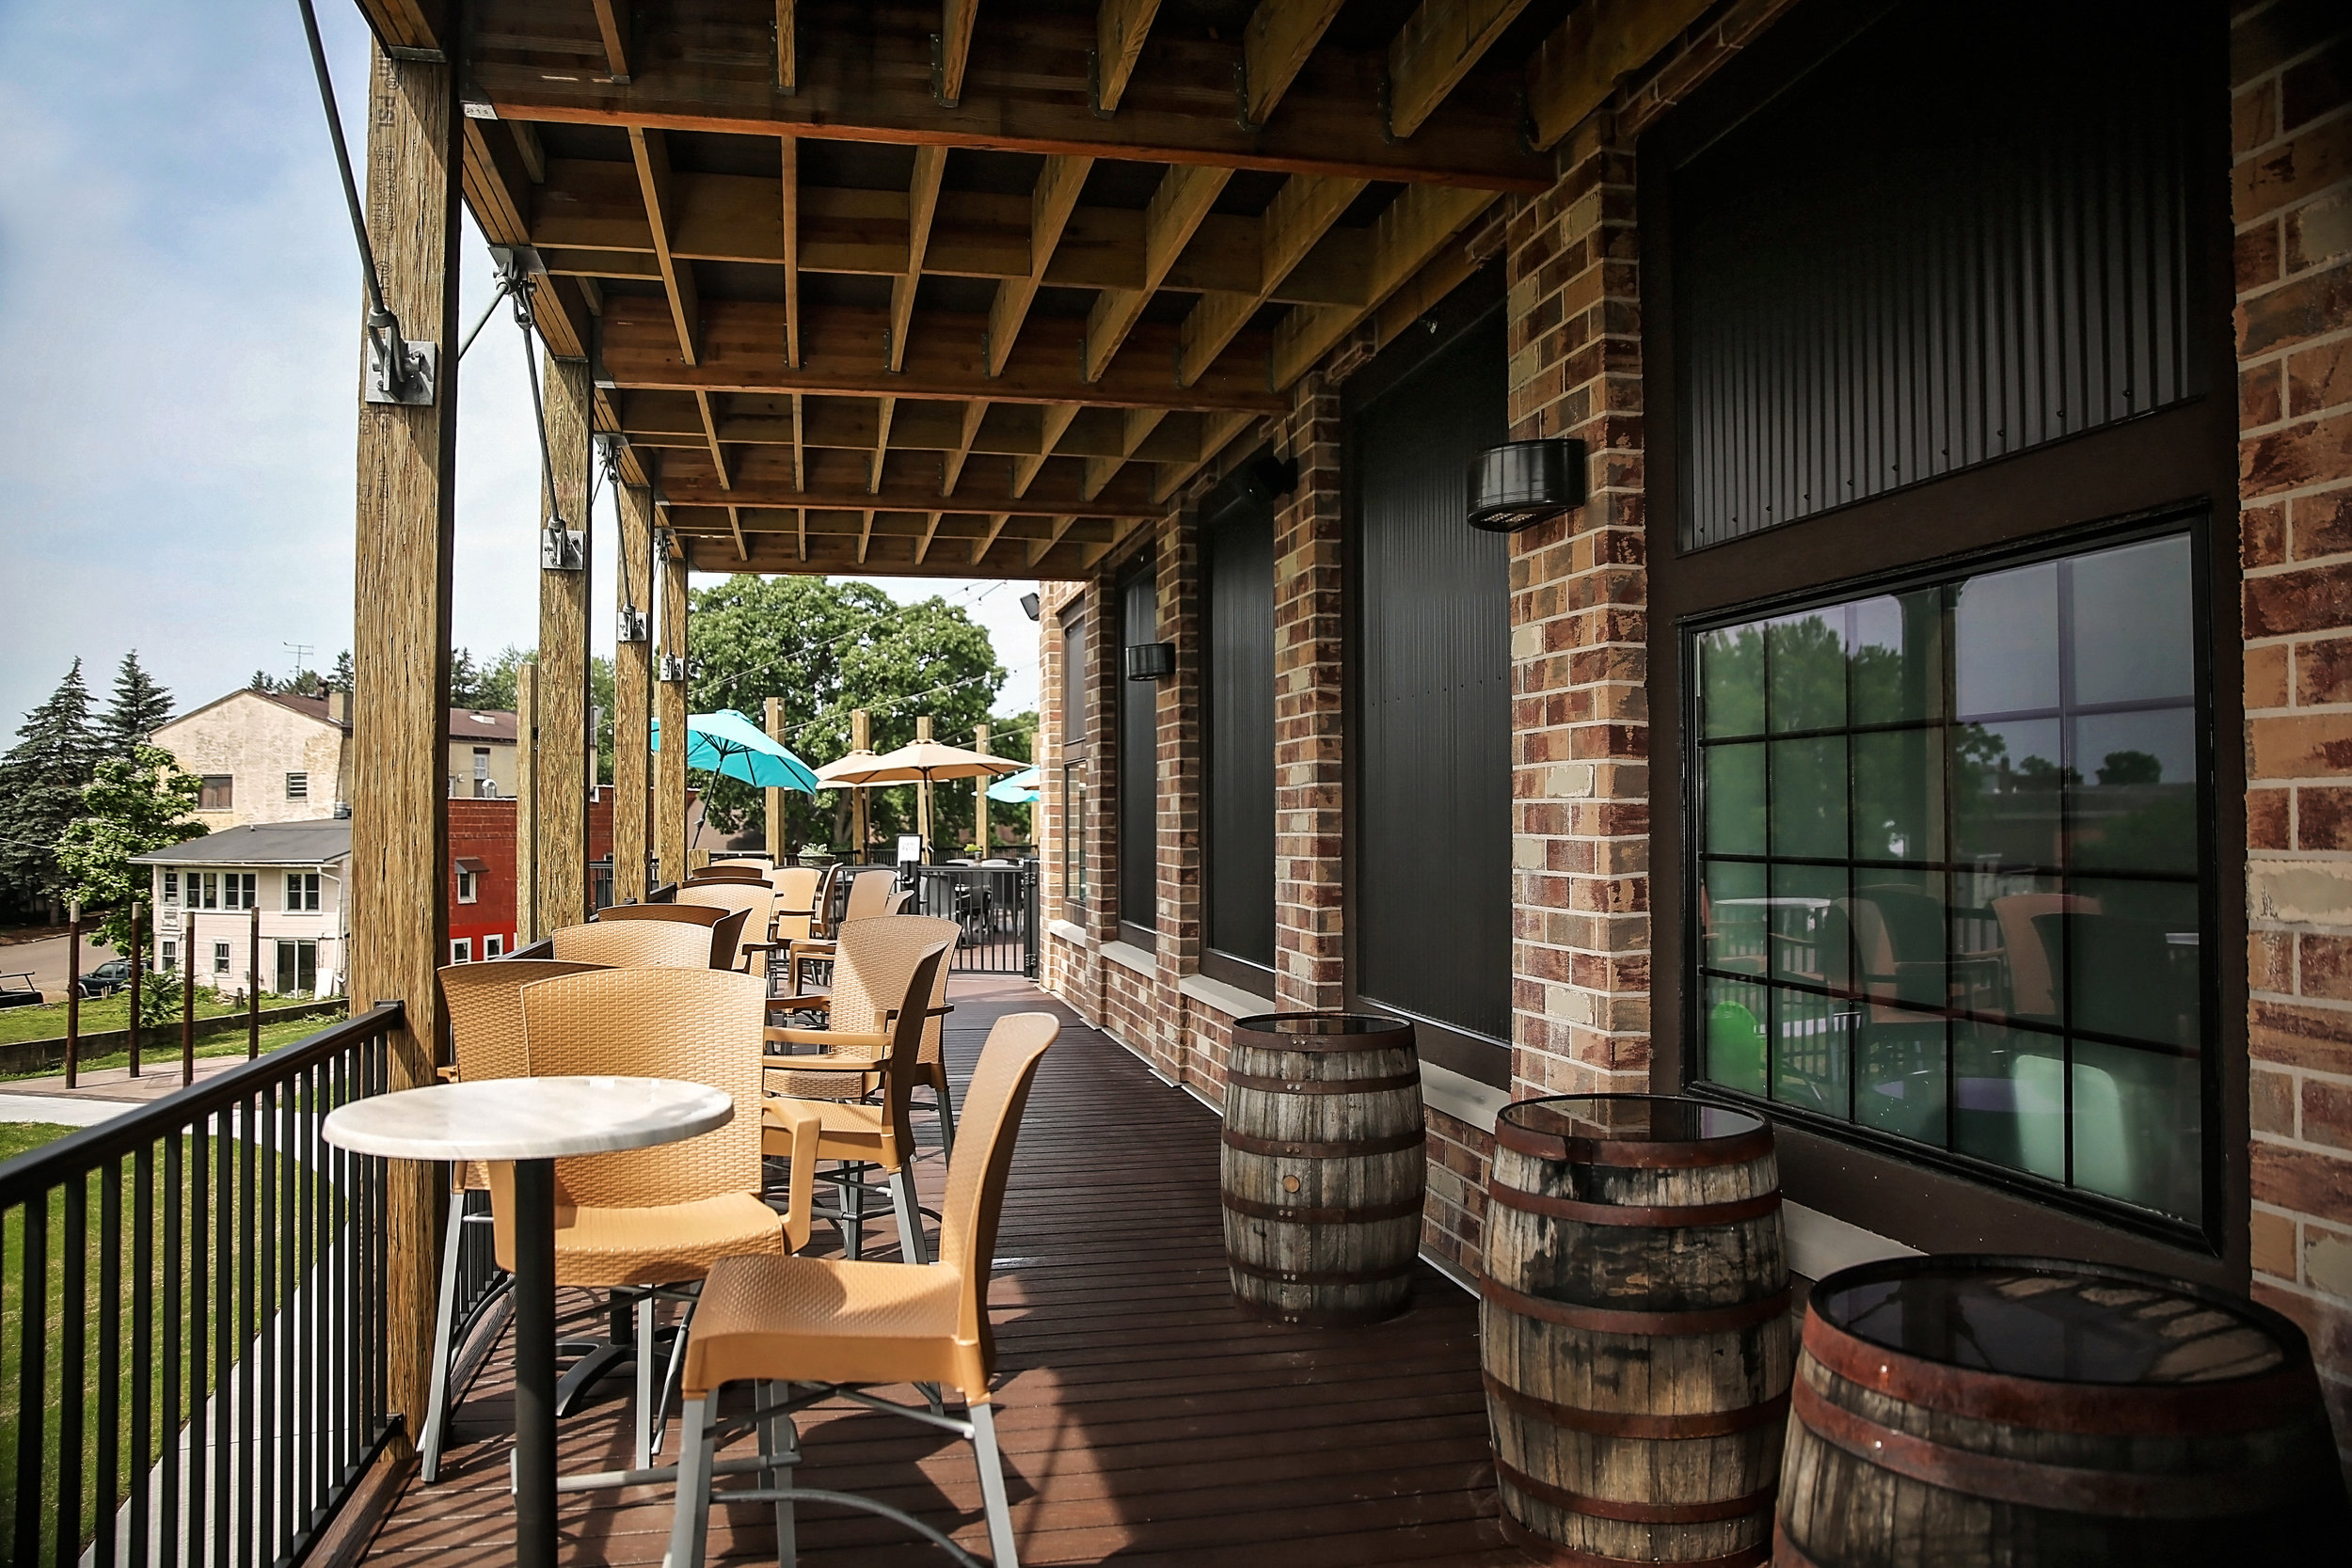 Outside balcony seating area at Vintage Brewery Bar & Restaurant